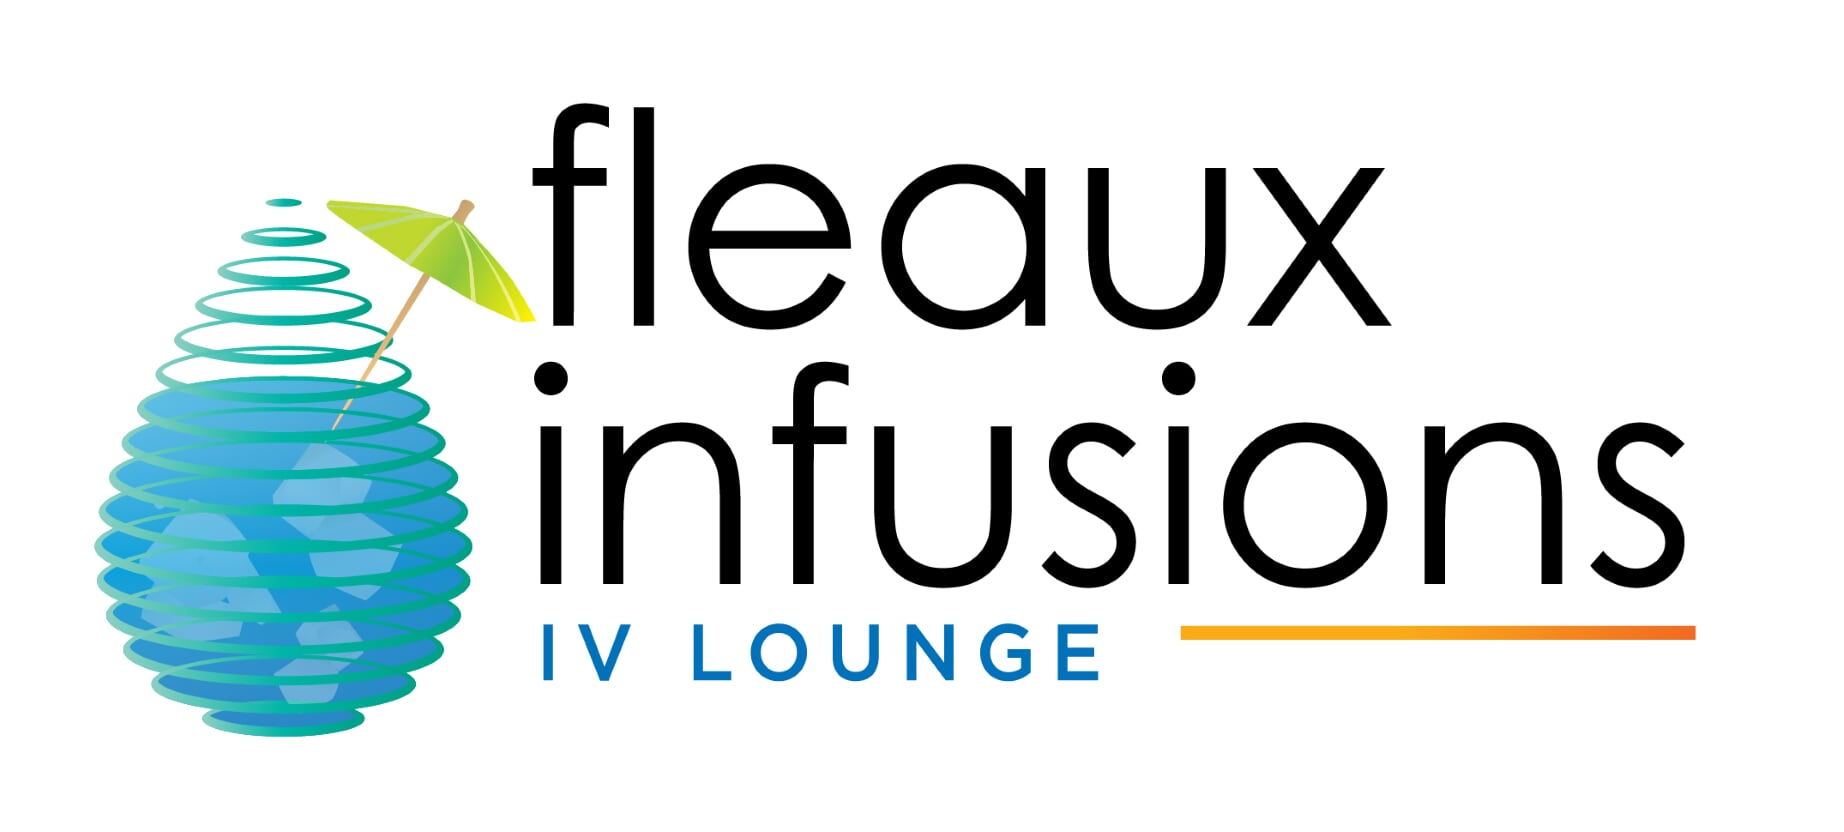 Fleaux Infusions IV Lounge